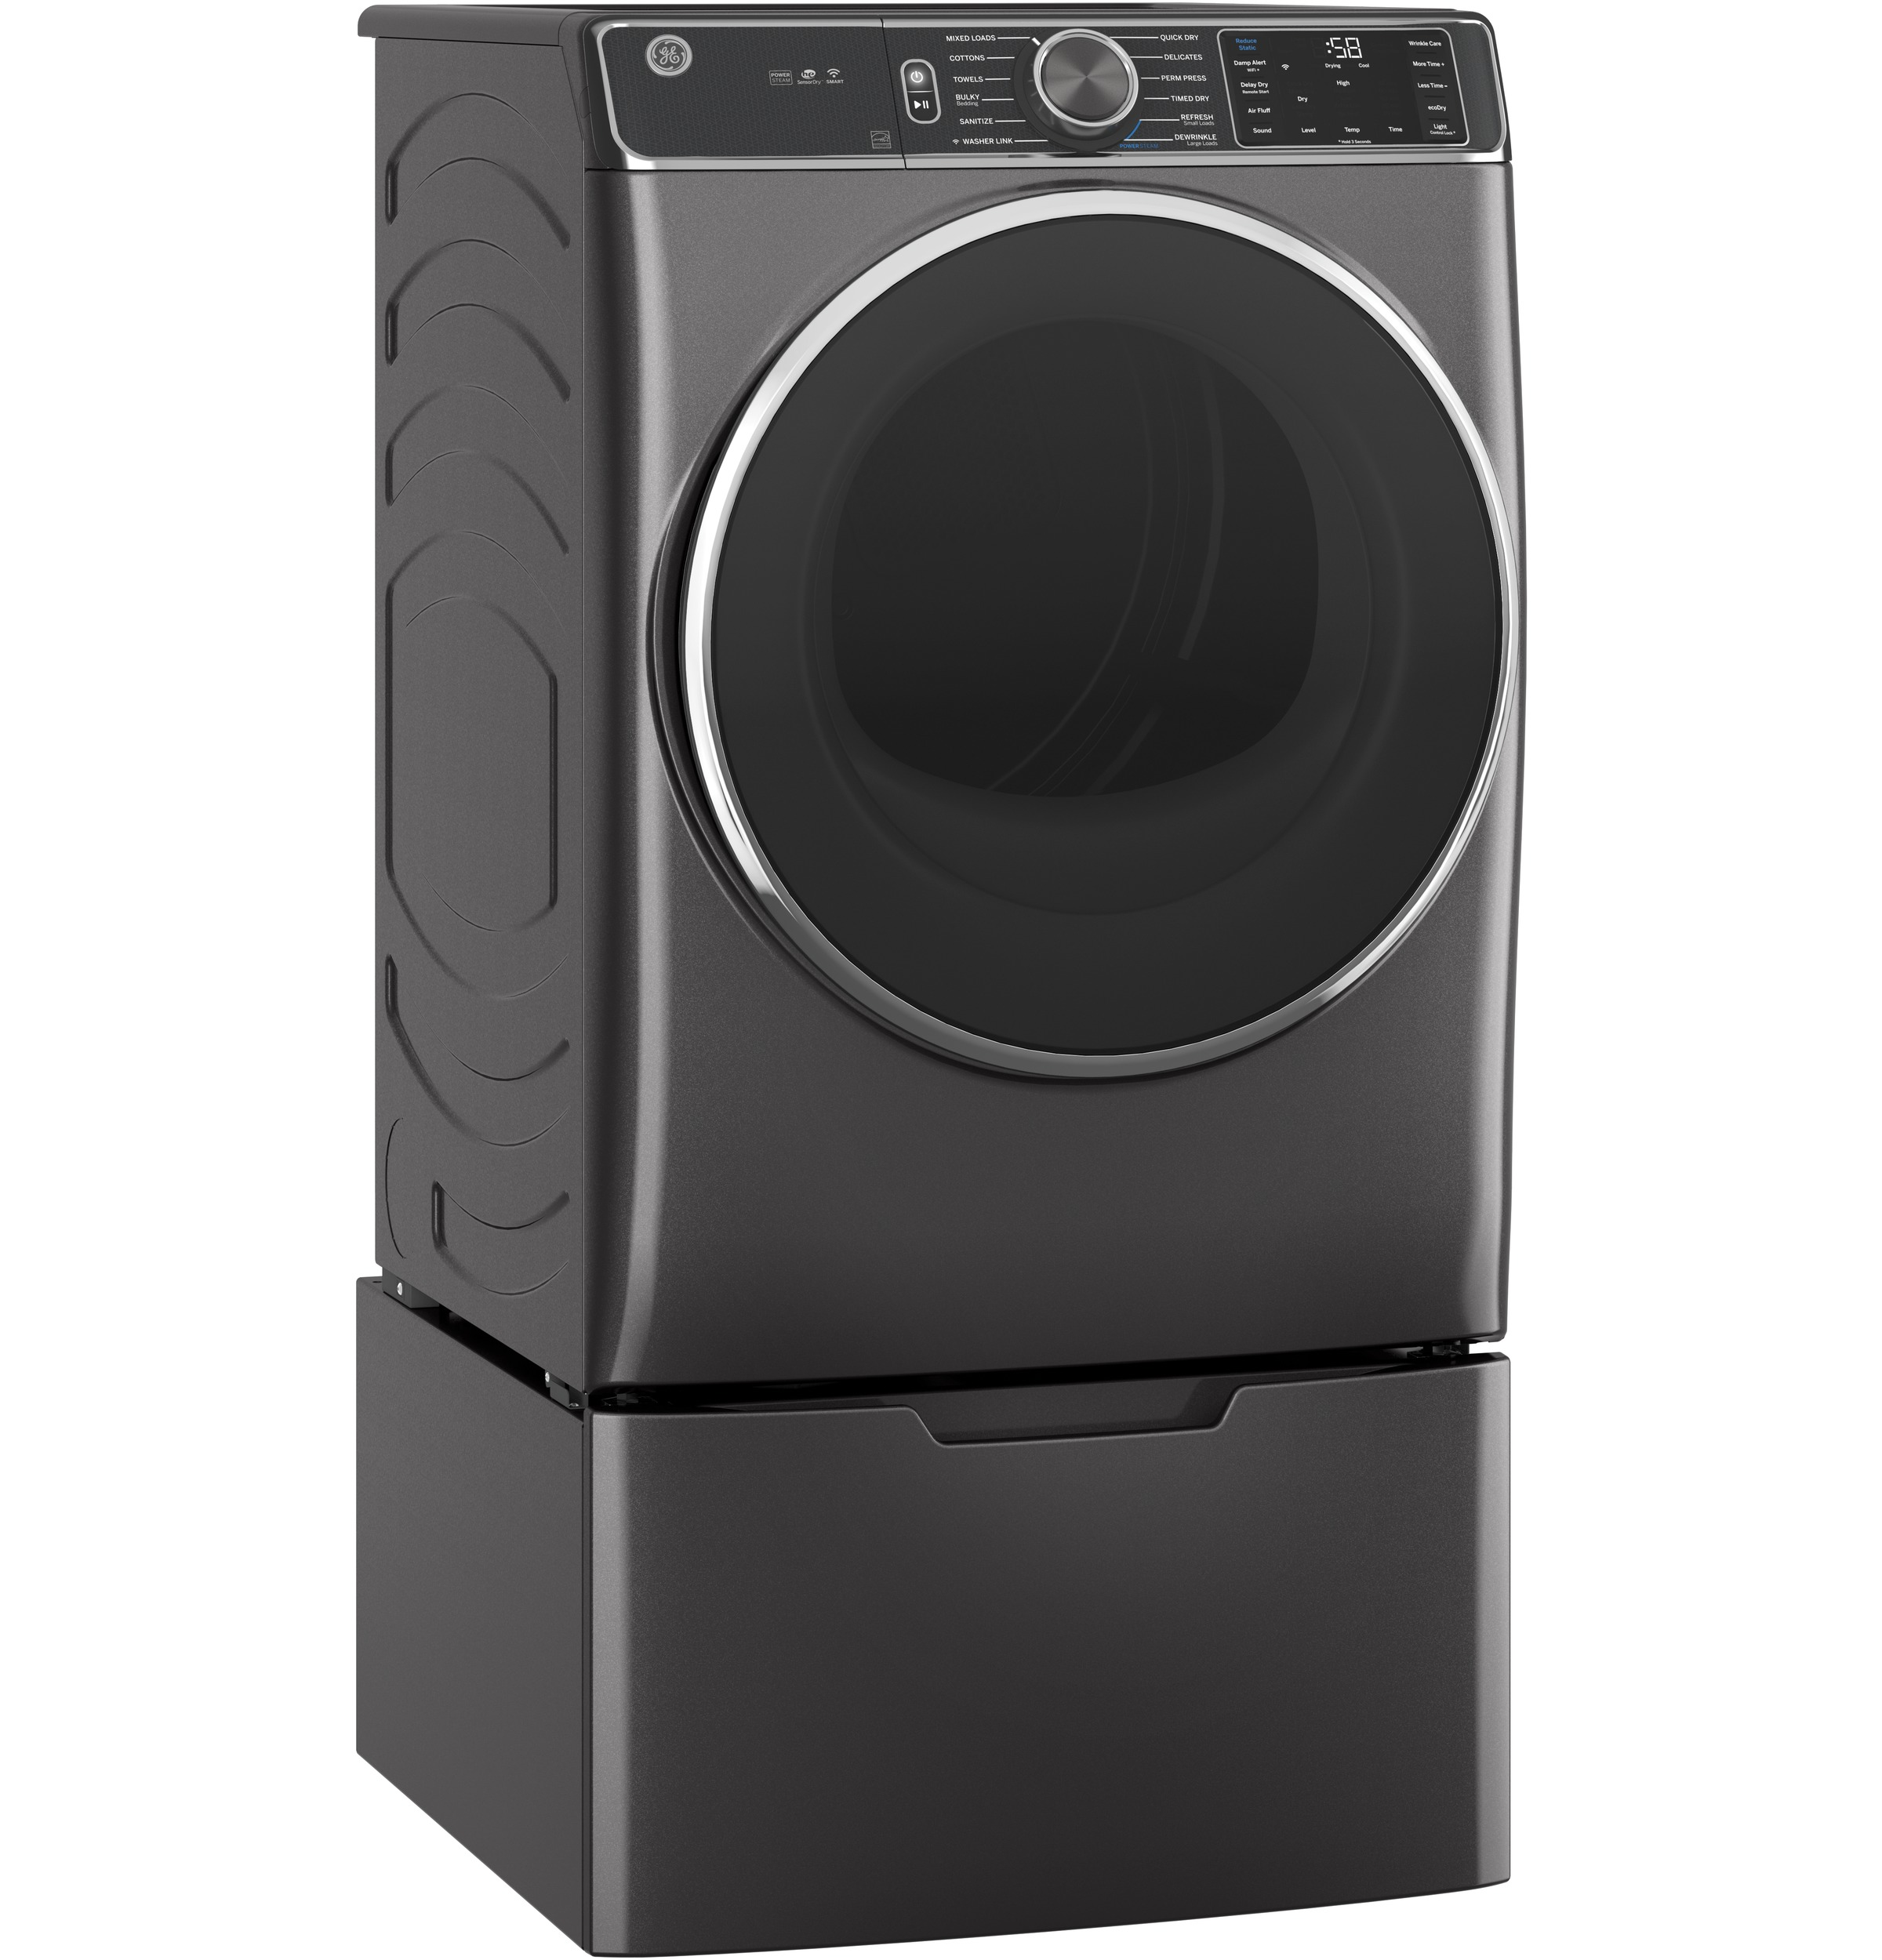 Model: GFD85ESPNDG | GE GE® 7.8 cu. ft. Capacity Smart Front Load Electric Dryer with Steam and Sanitize Cycle